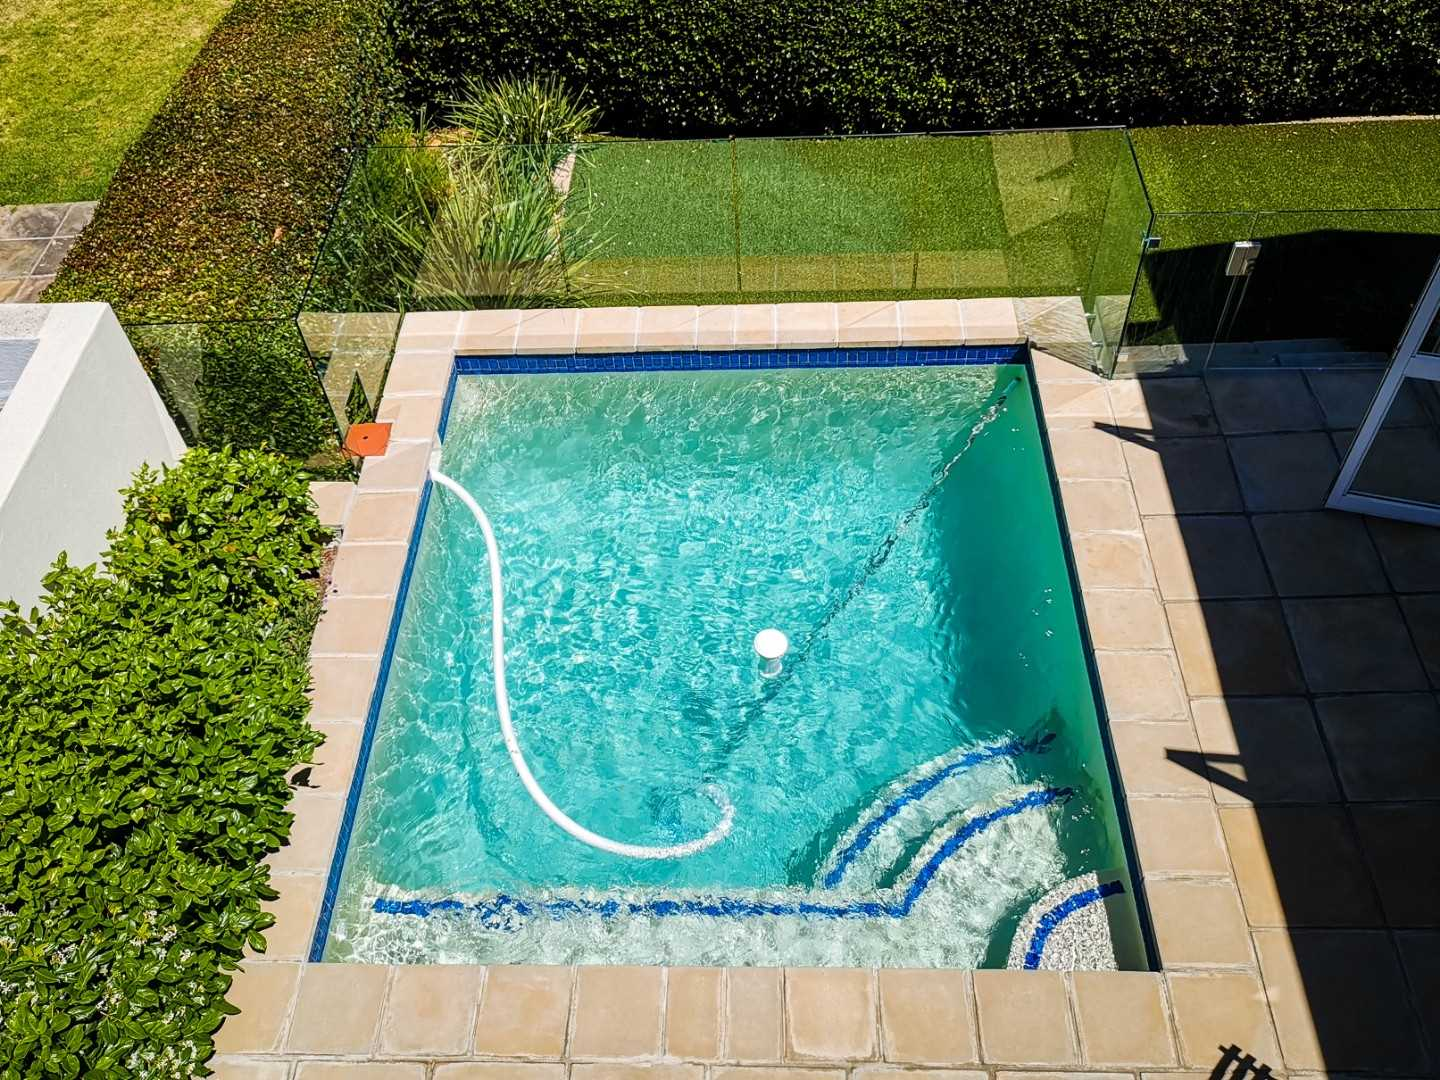 View of the pool from above